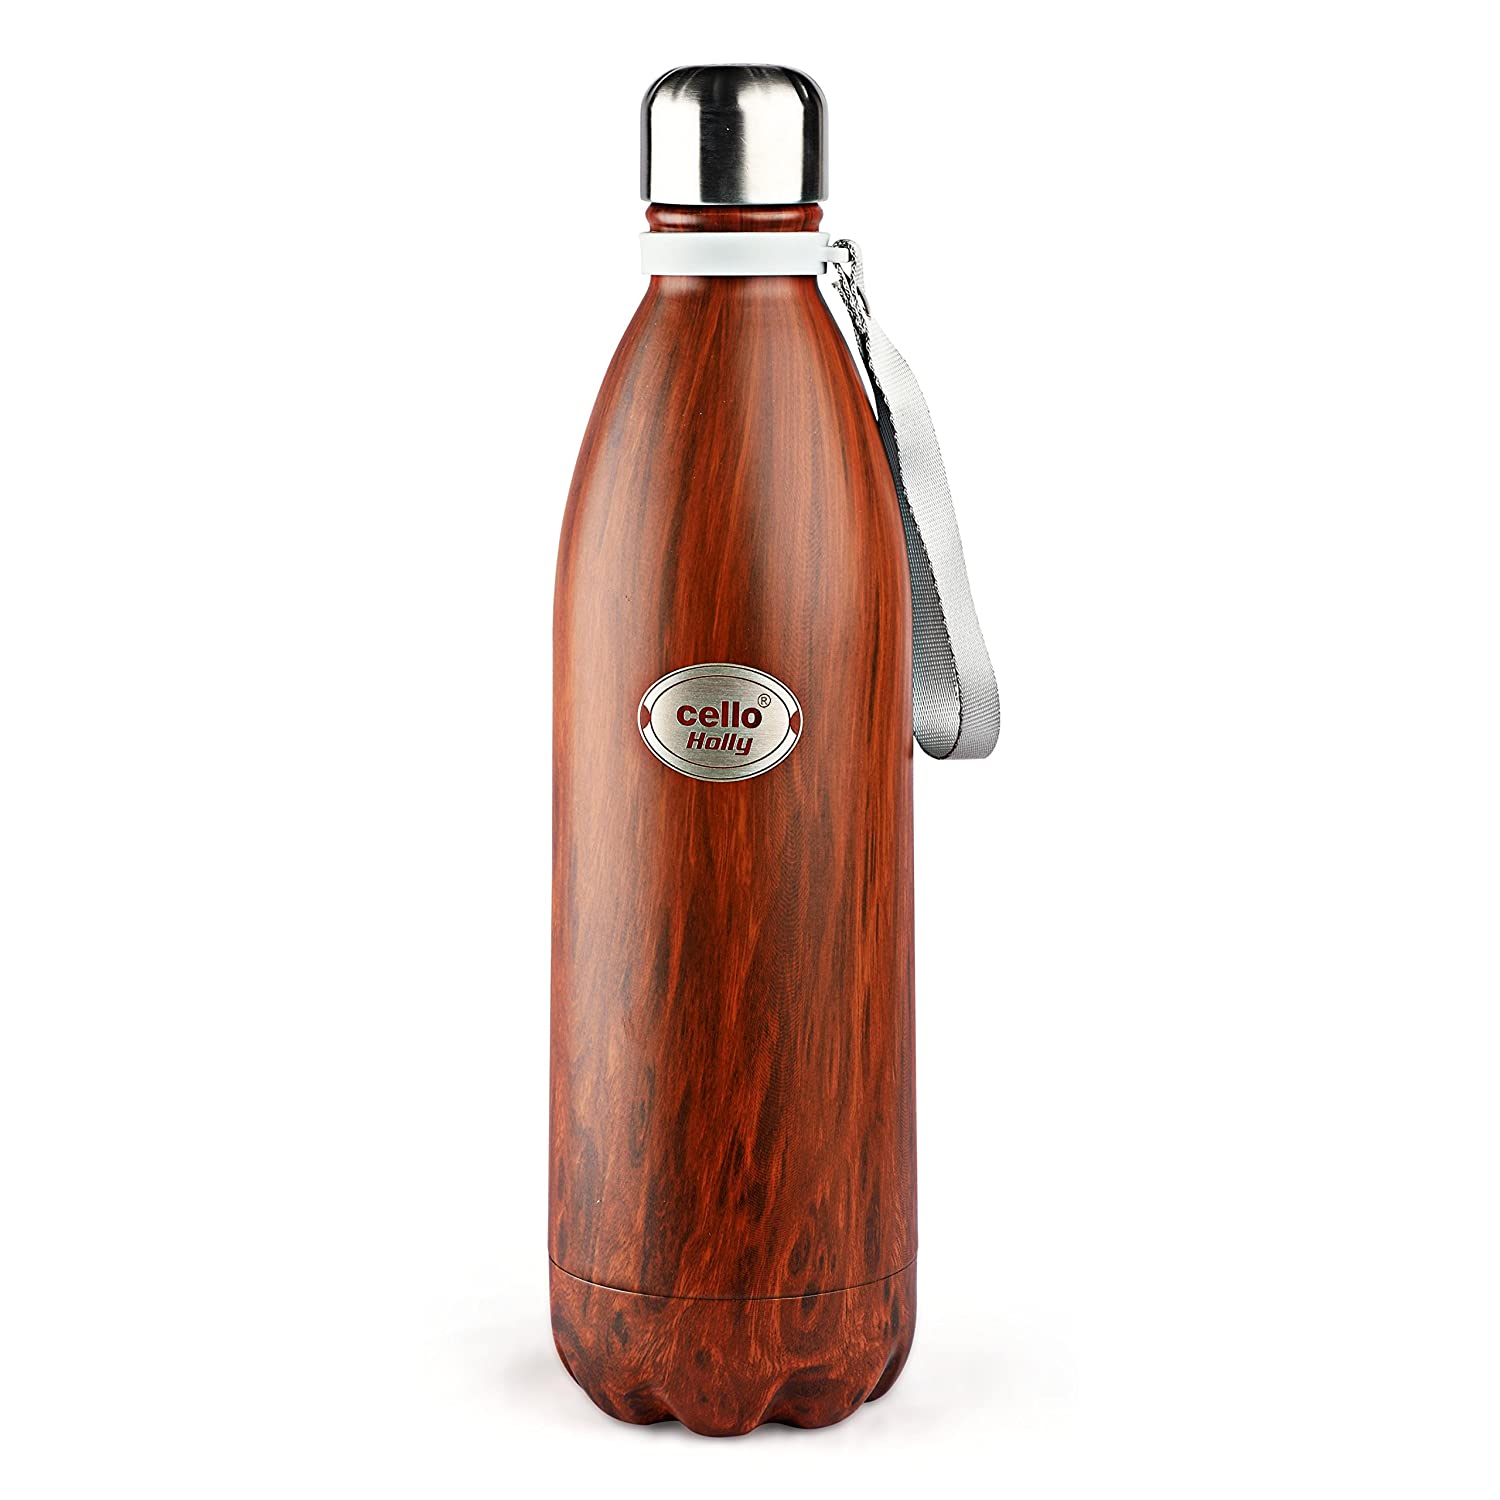 cello water bottle price